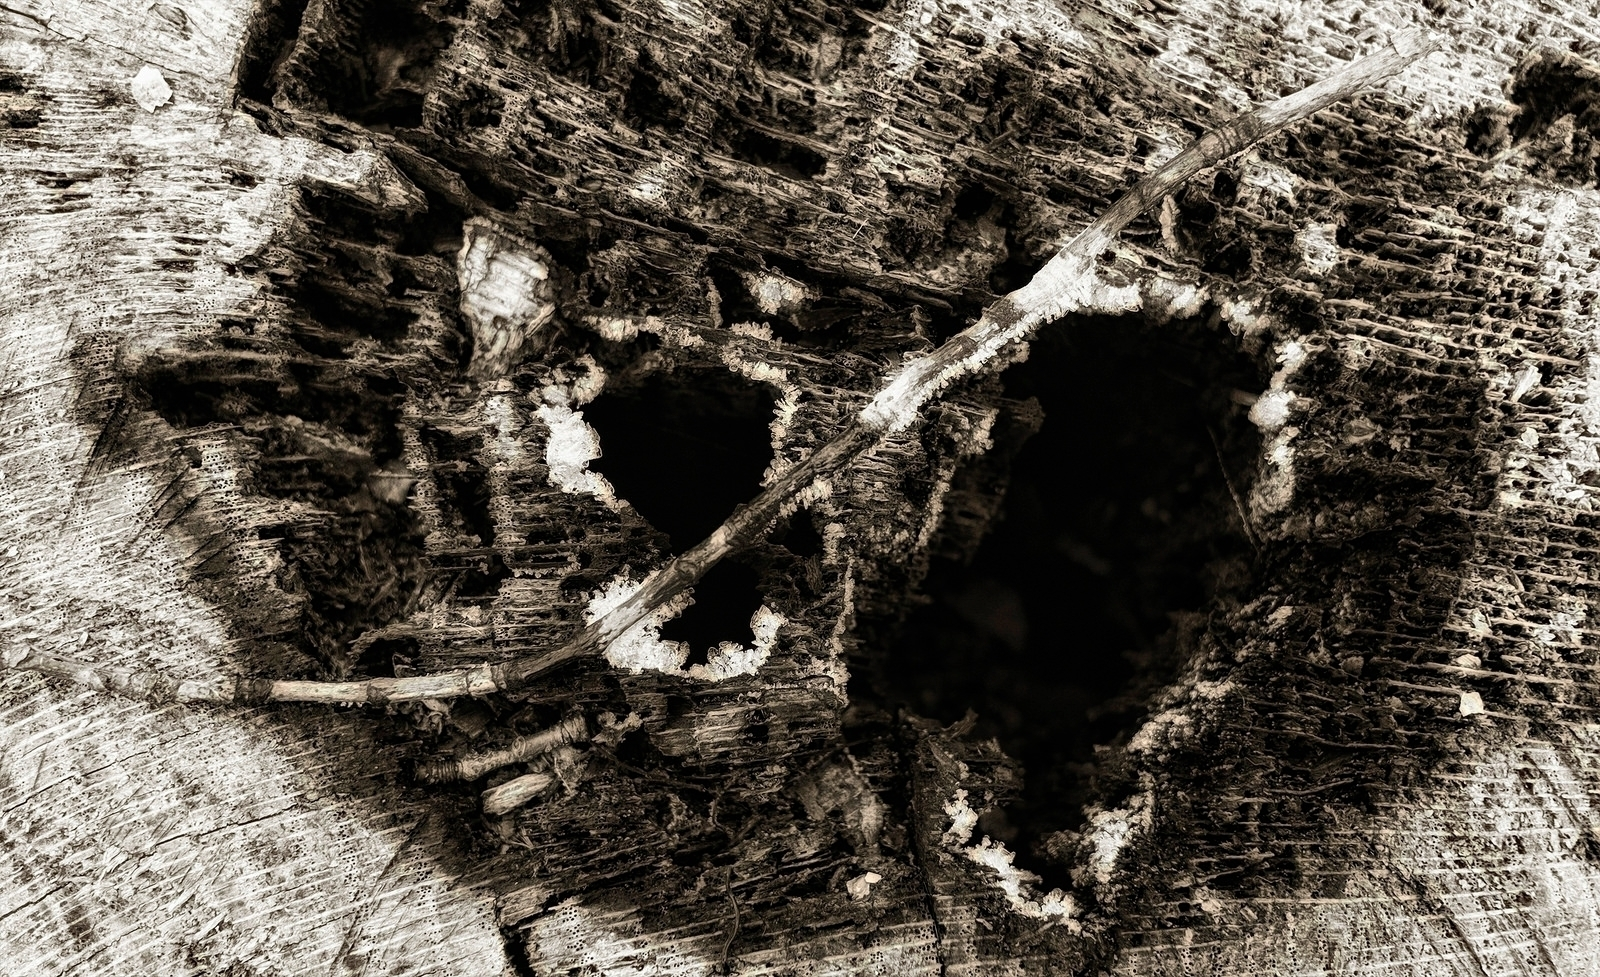 hole heartwood, tinted frost  - monochrome - docdenny | ello